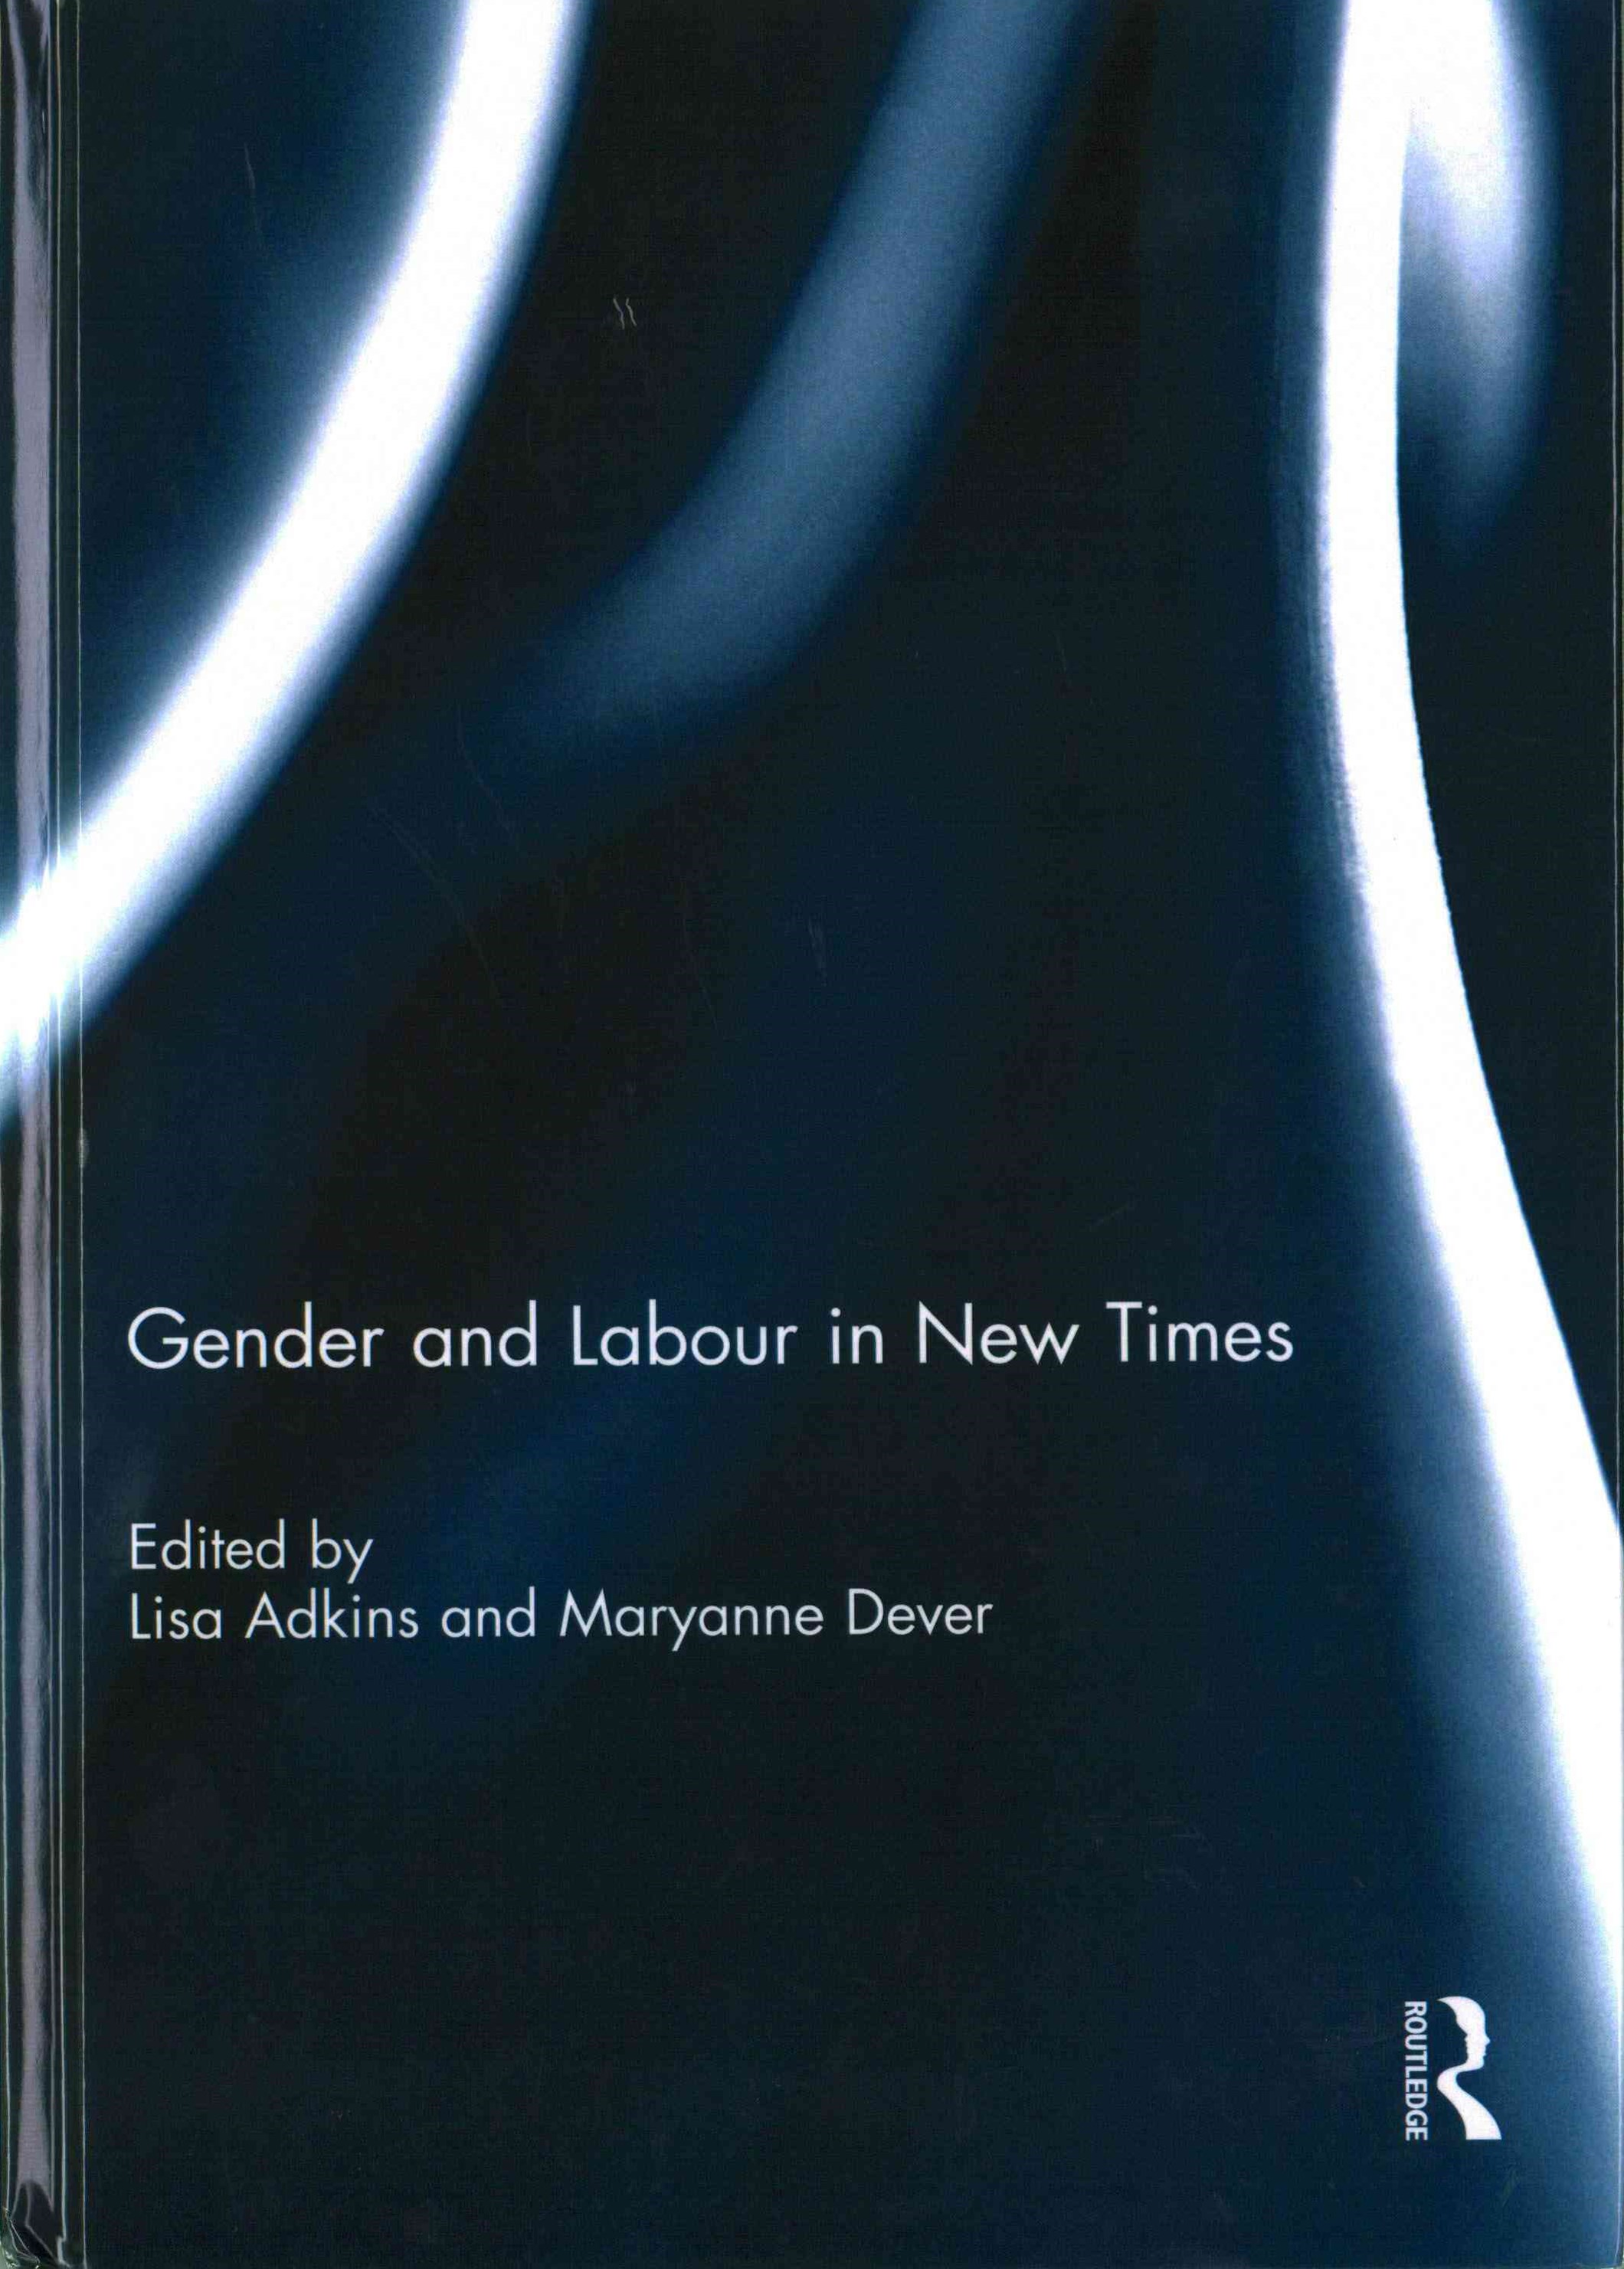 Gender and Labour in New Times